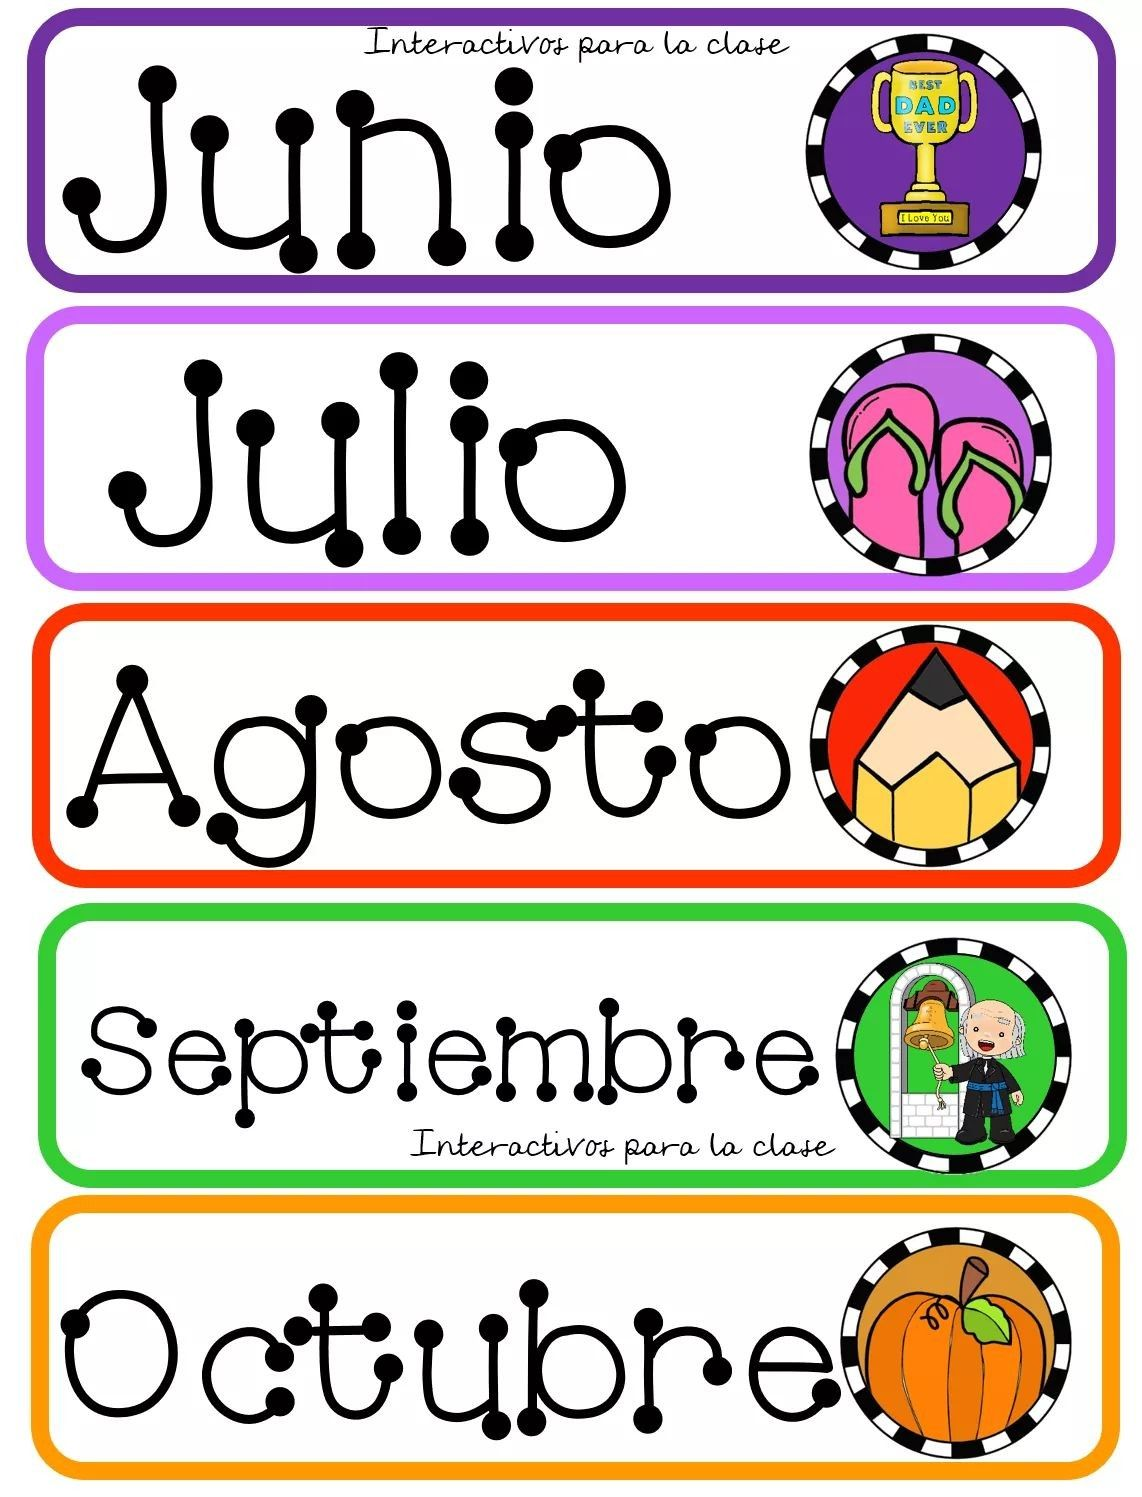 Meses Del Año En Ingles Pin By Dorlys Larez On Meses Del AÑo Pinterest Ideas